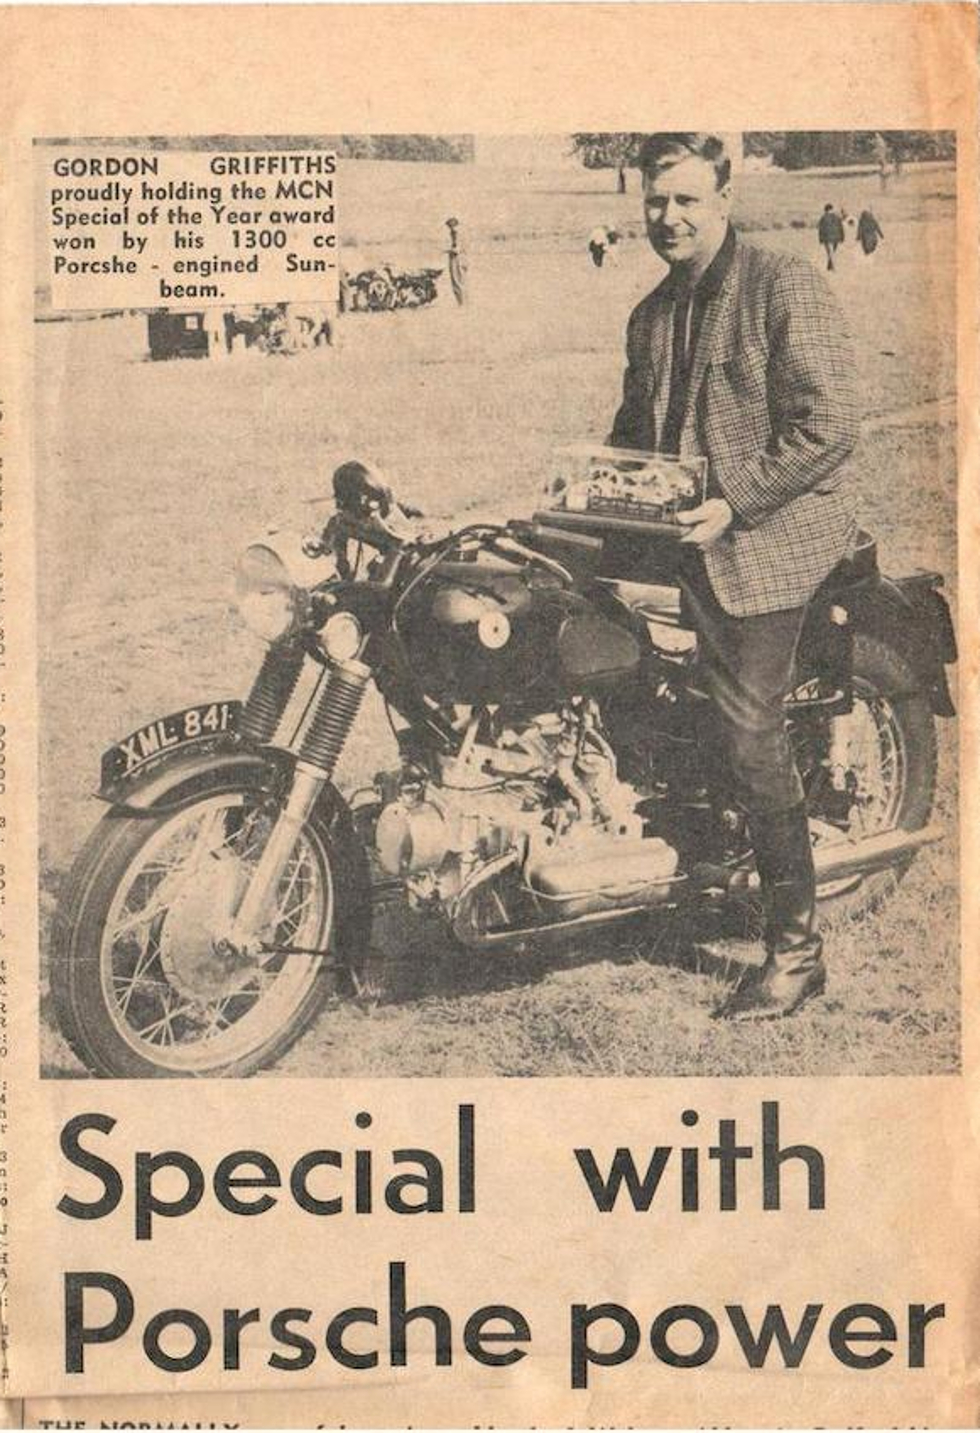 """Newspaper clipping from the July 8th 1970 edition of Motorcycle News featuring Gordon Griffiths holding his Motorcyle News """"Special of the Year"""" award. (PIcture courtesy Motorcycle News and Bonhams)."""